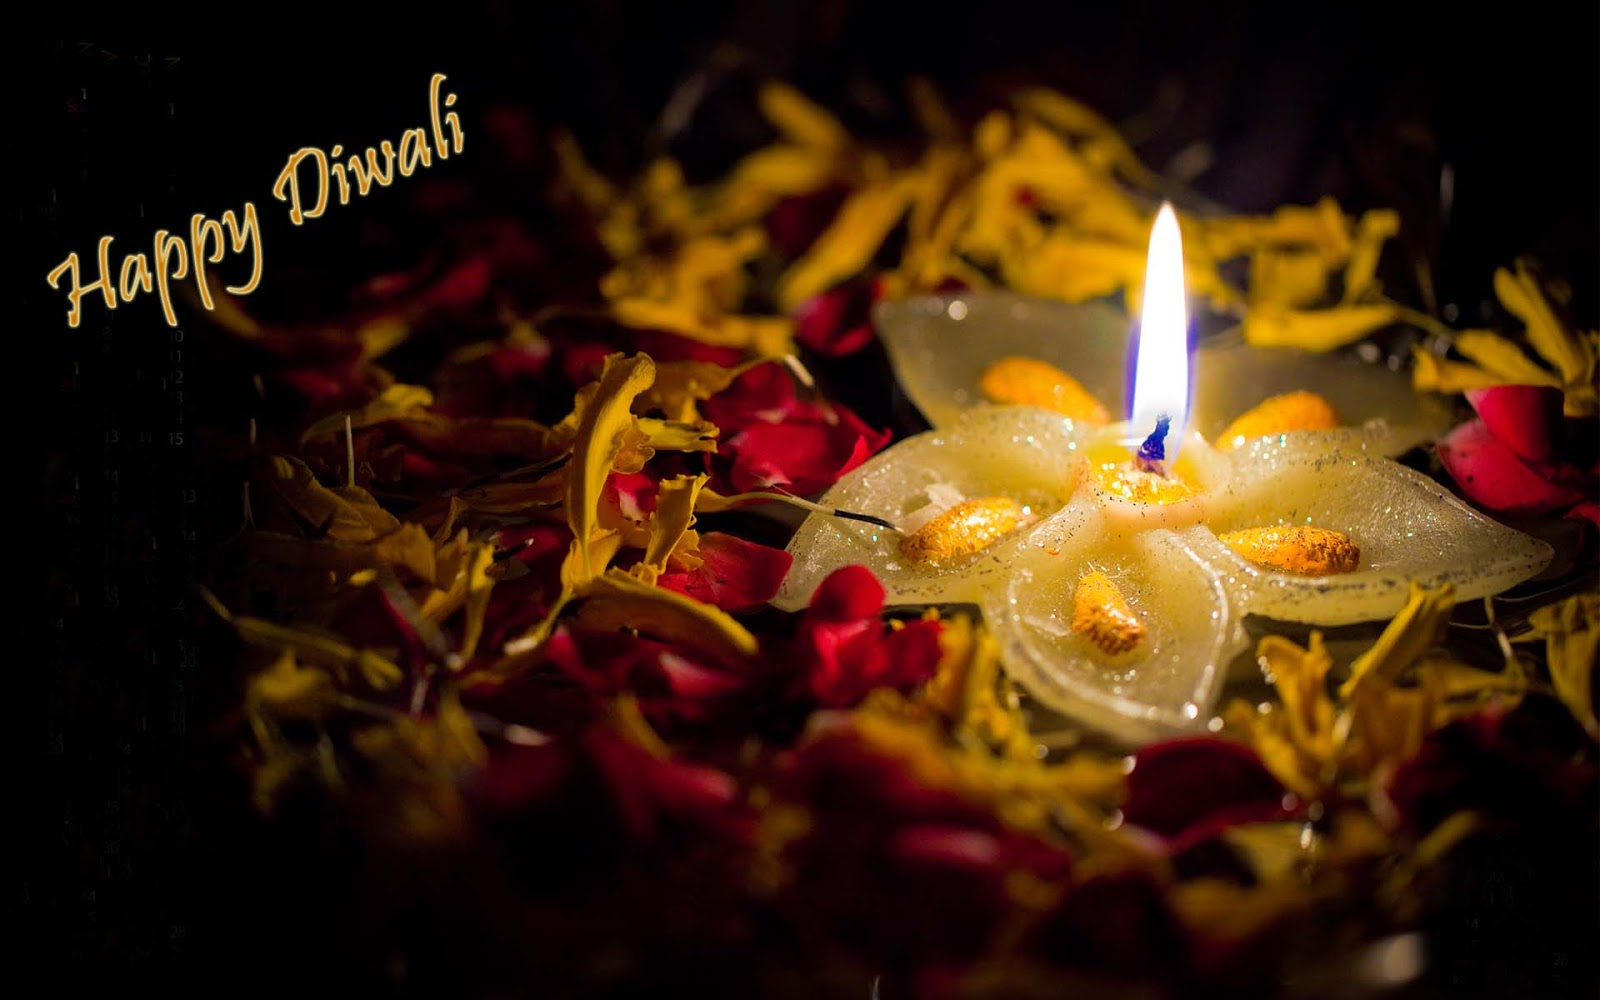 Fantastic Wallpaper Love Diwali - happy-diwali-wallpapers-images  Snapshot_94241.jpg